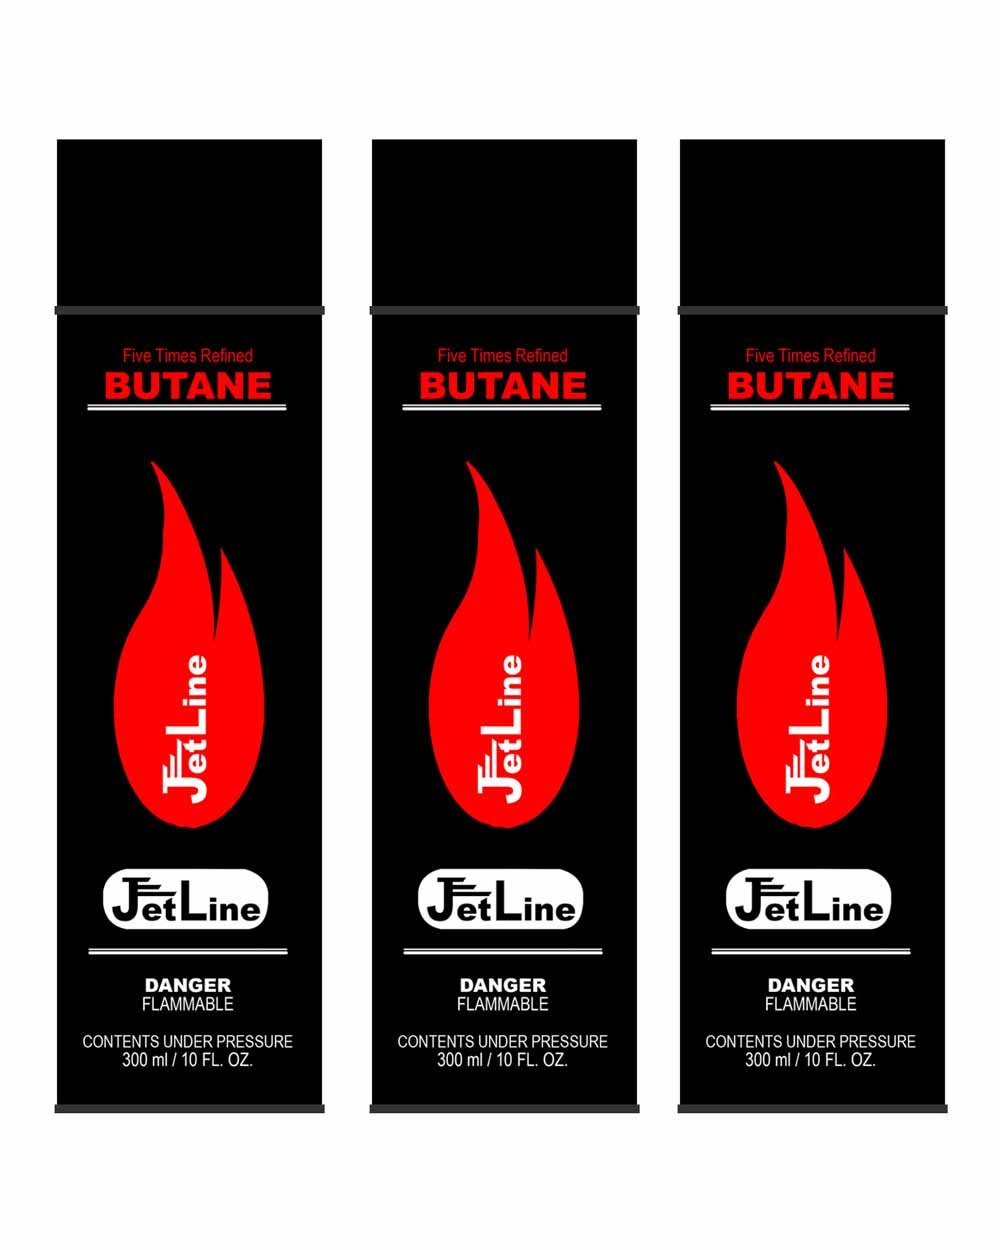 Amazon jetline premium butane 5 times refined 5x filtered amazon jetline premium butane 5 times refined 5x filtered refill 300ml 10oz 3 cans sports outdoors reheart Image collections